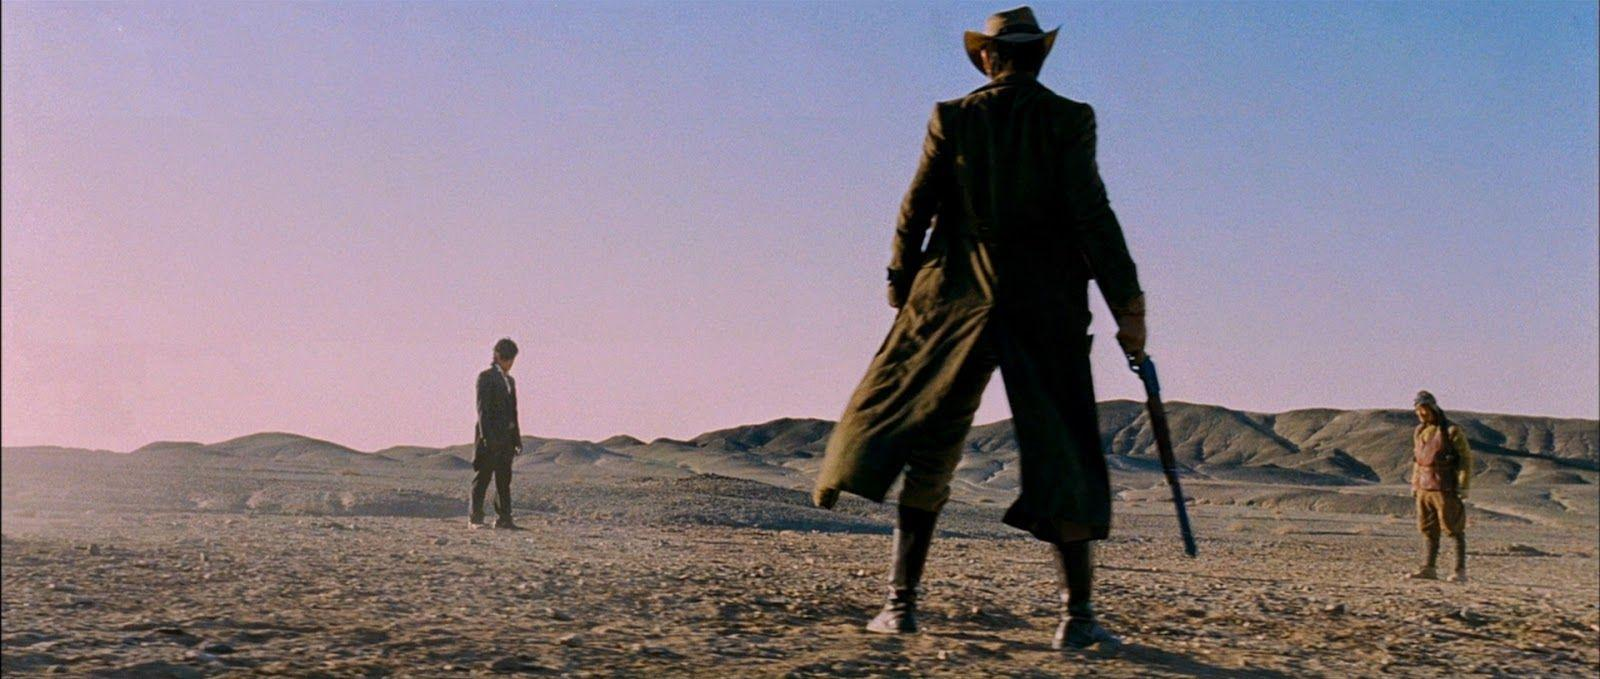 Tips from Chip: Movie – The Good, the Bad, the Weird